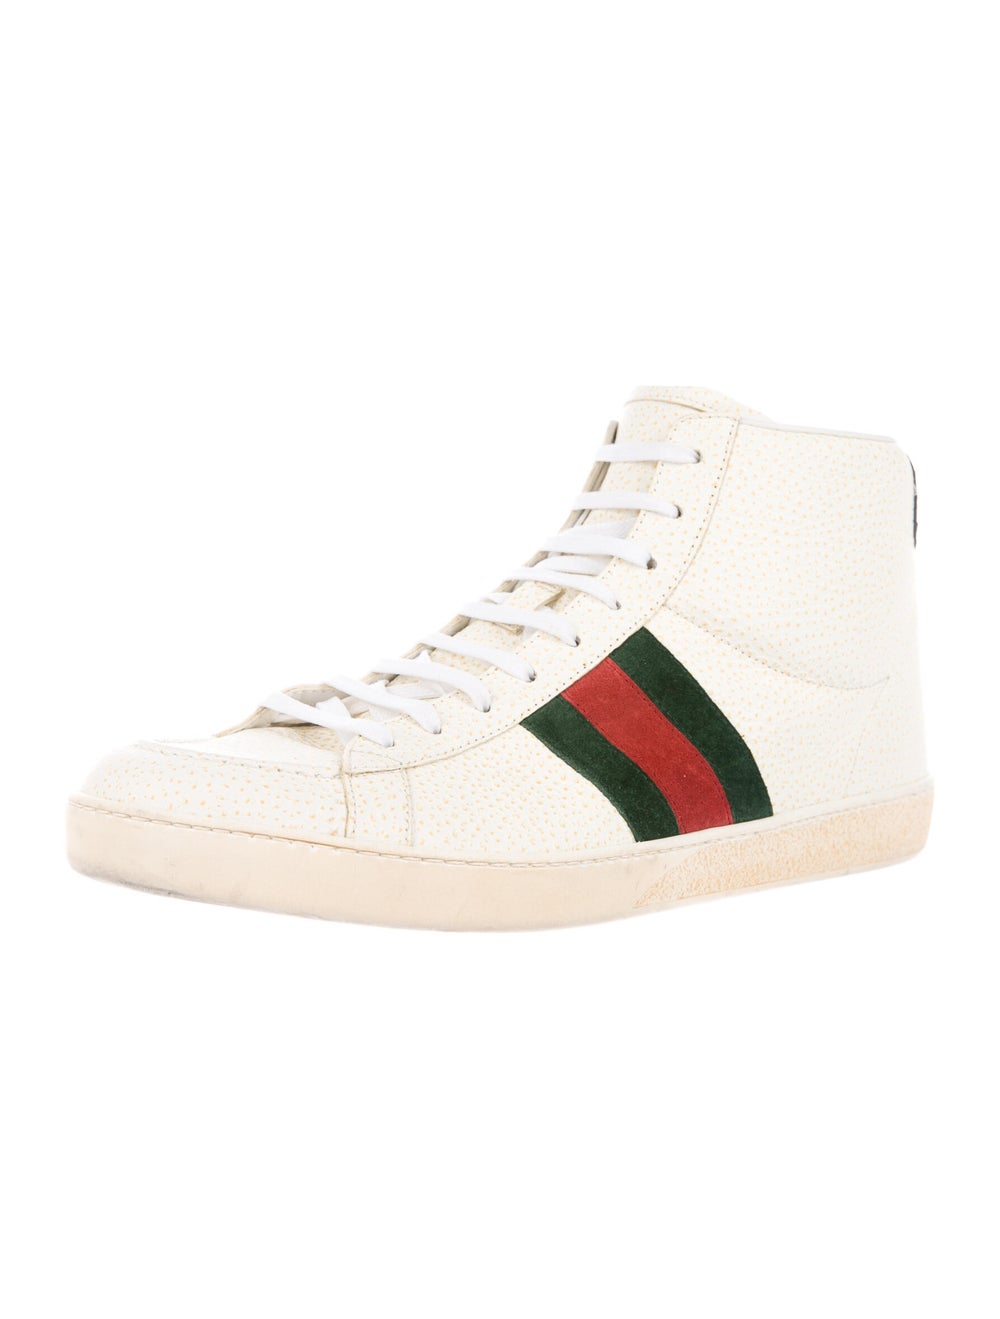 Gucci Web Accent Leather Sneakers - image 2